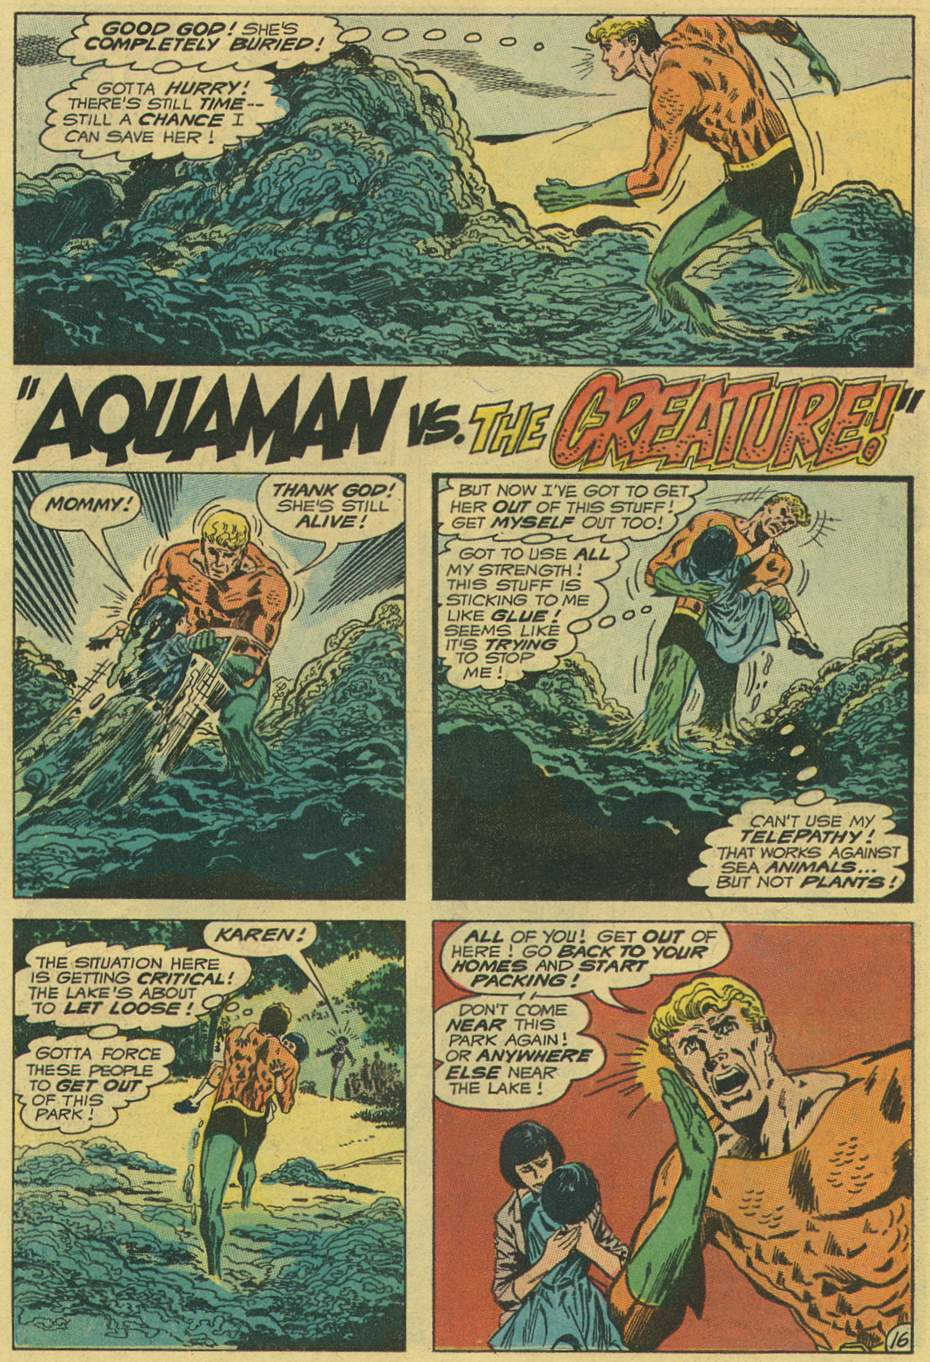 Aquaman #56 (1971) by Steve Skeates, Jim Aparo, and Dick Giordano